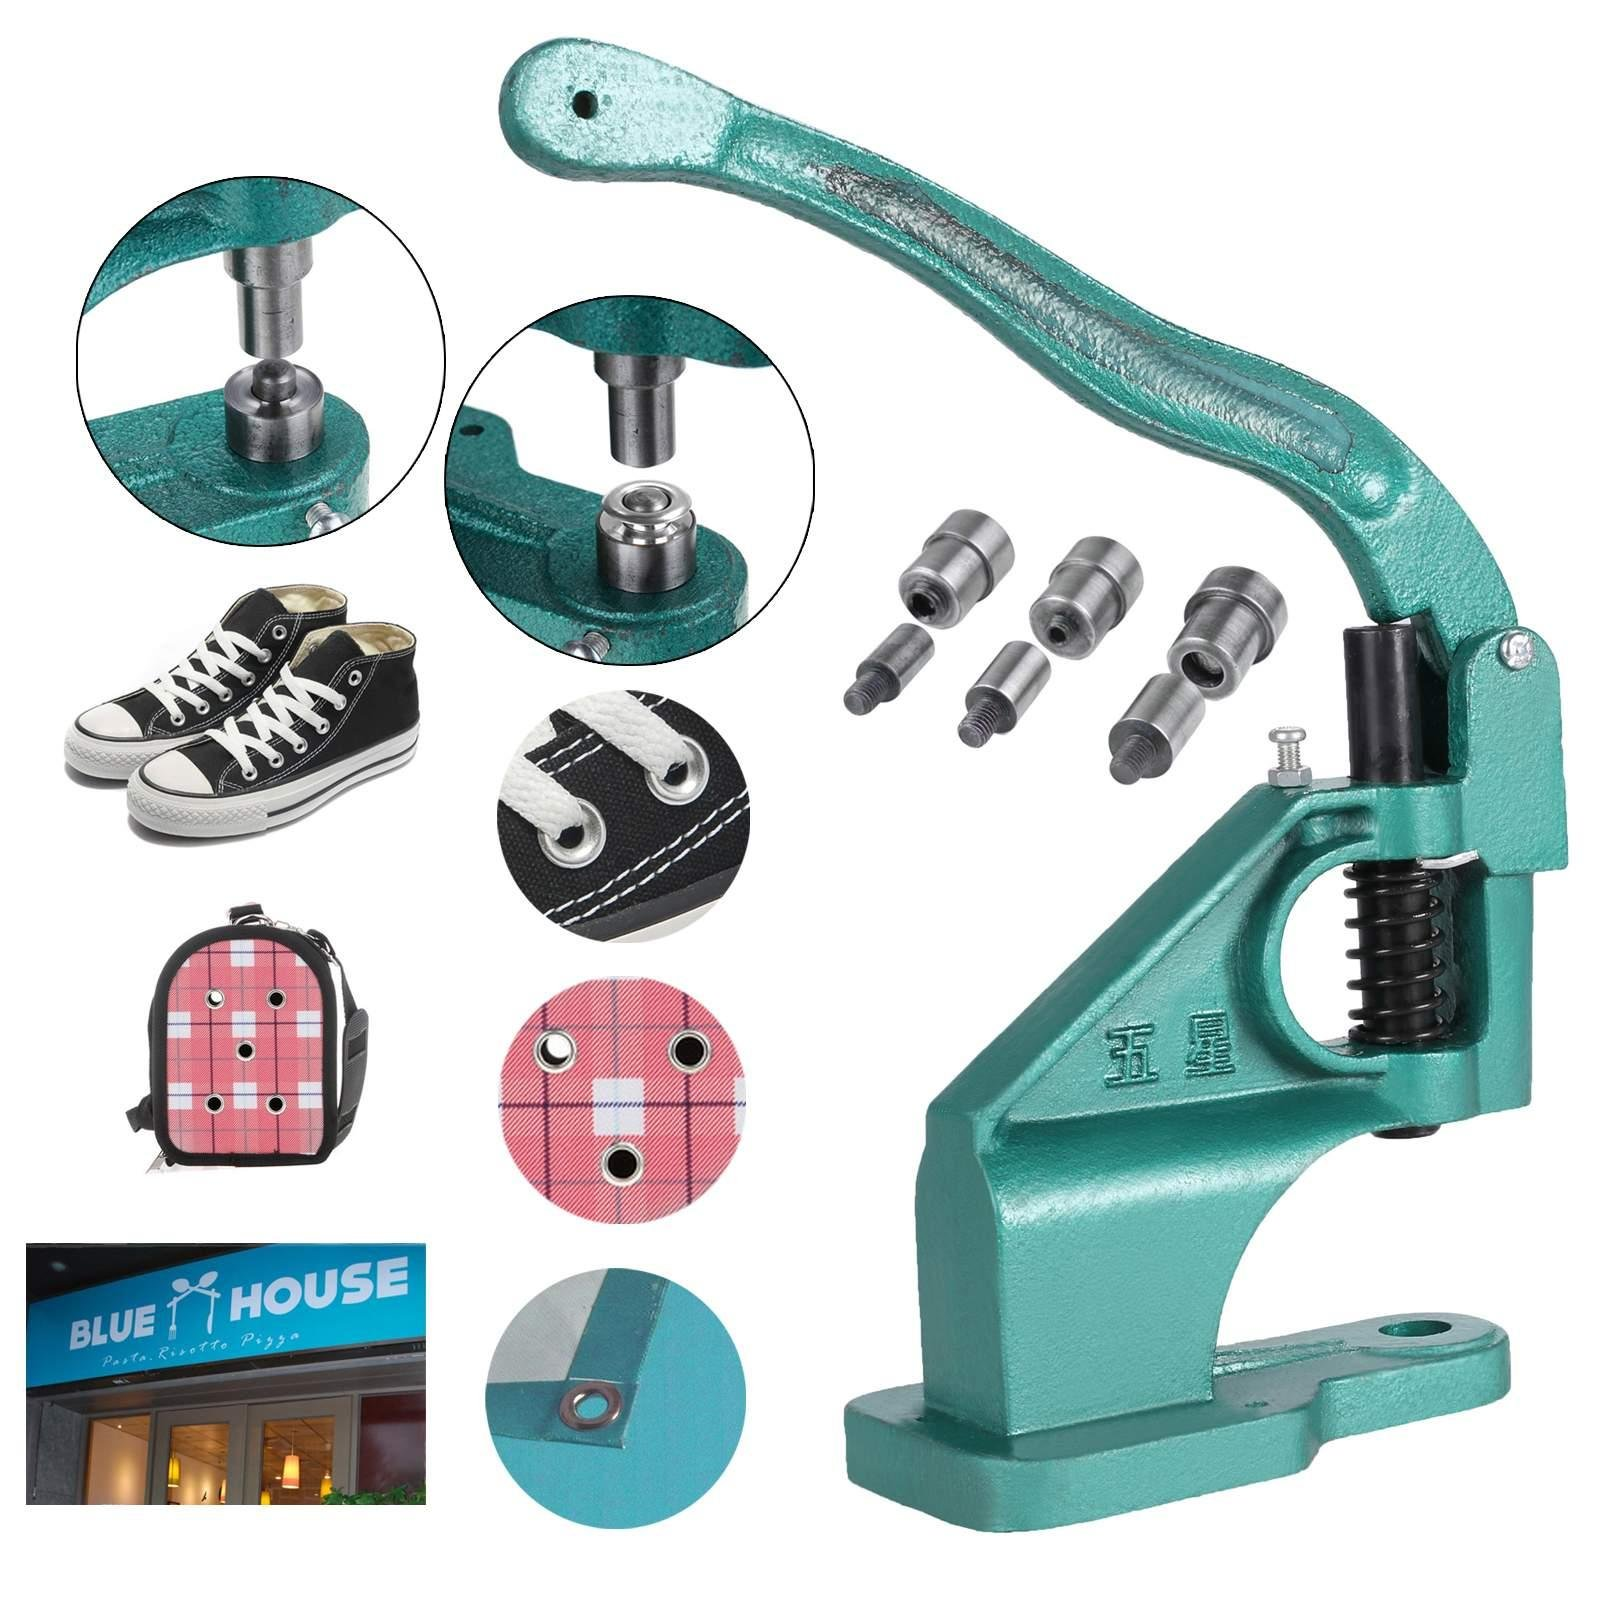 Meflying Industrial Use Hand Press Banner Grommet Machine 3 Die (#0#2#4) with 900 Grommets Eyelet Tool Grommet Tools Hole Punch Tool Kit (US Stock)